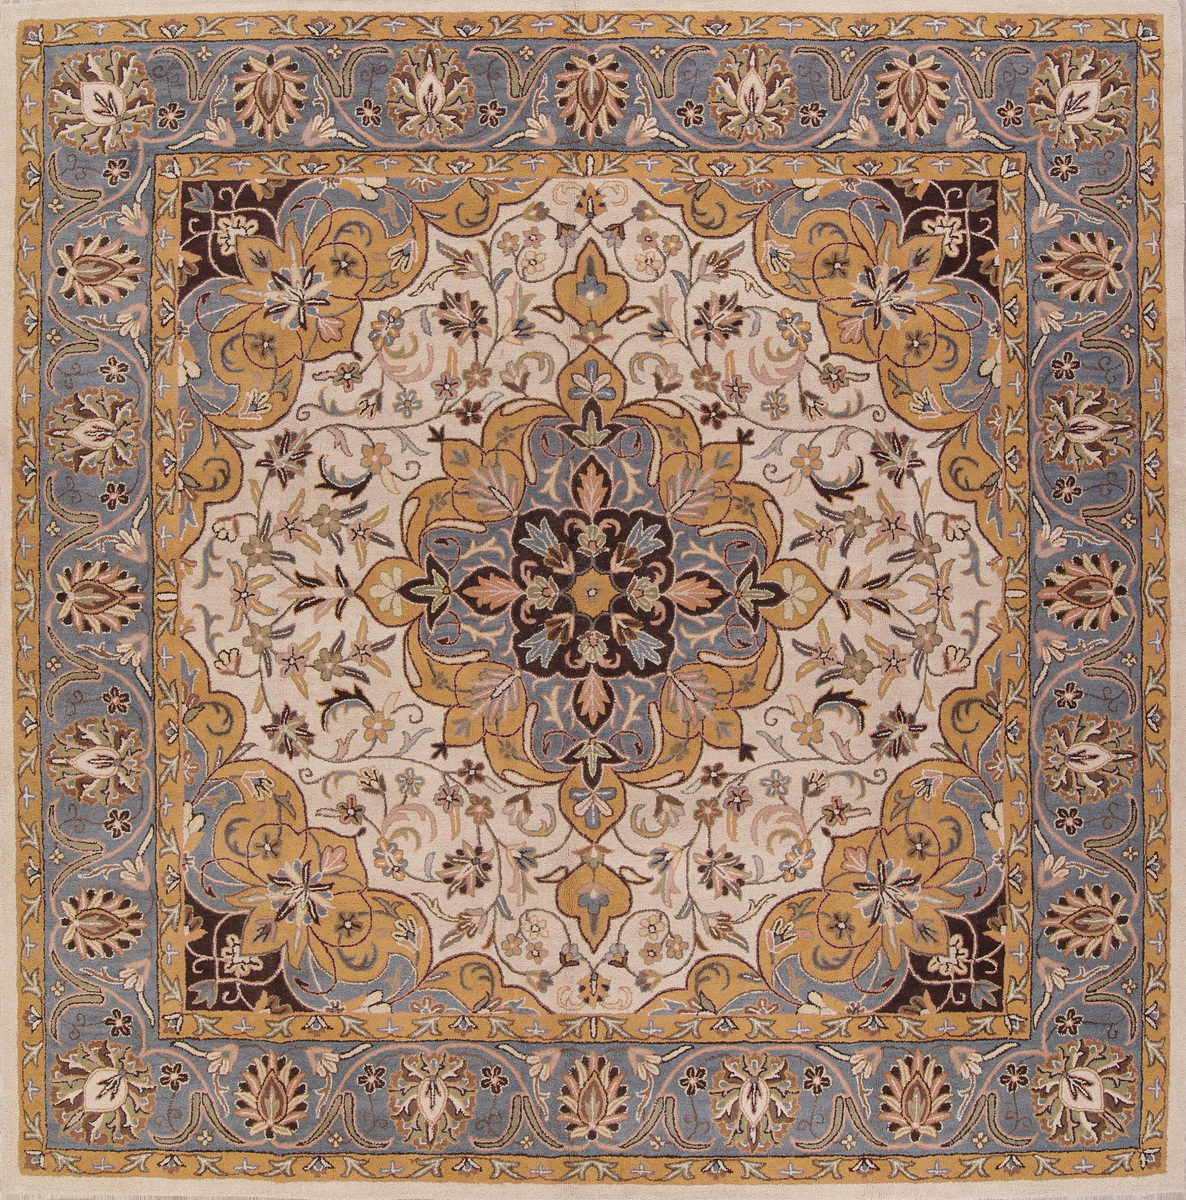 10x10 Square New Oushak Oriental Wool Area Rug: Hand-tufted Floral Square Oushak Indian Oriental Ivory Rug